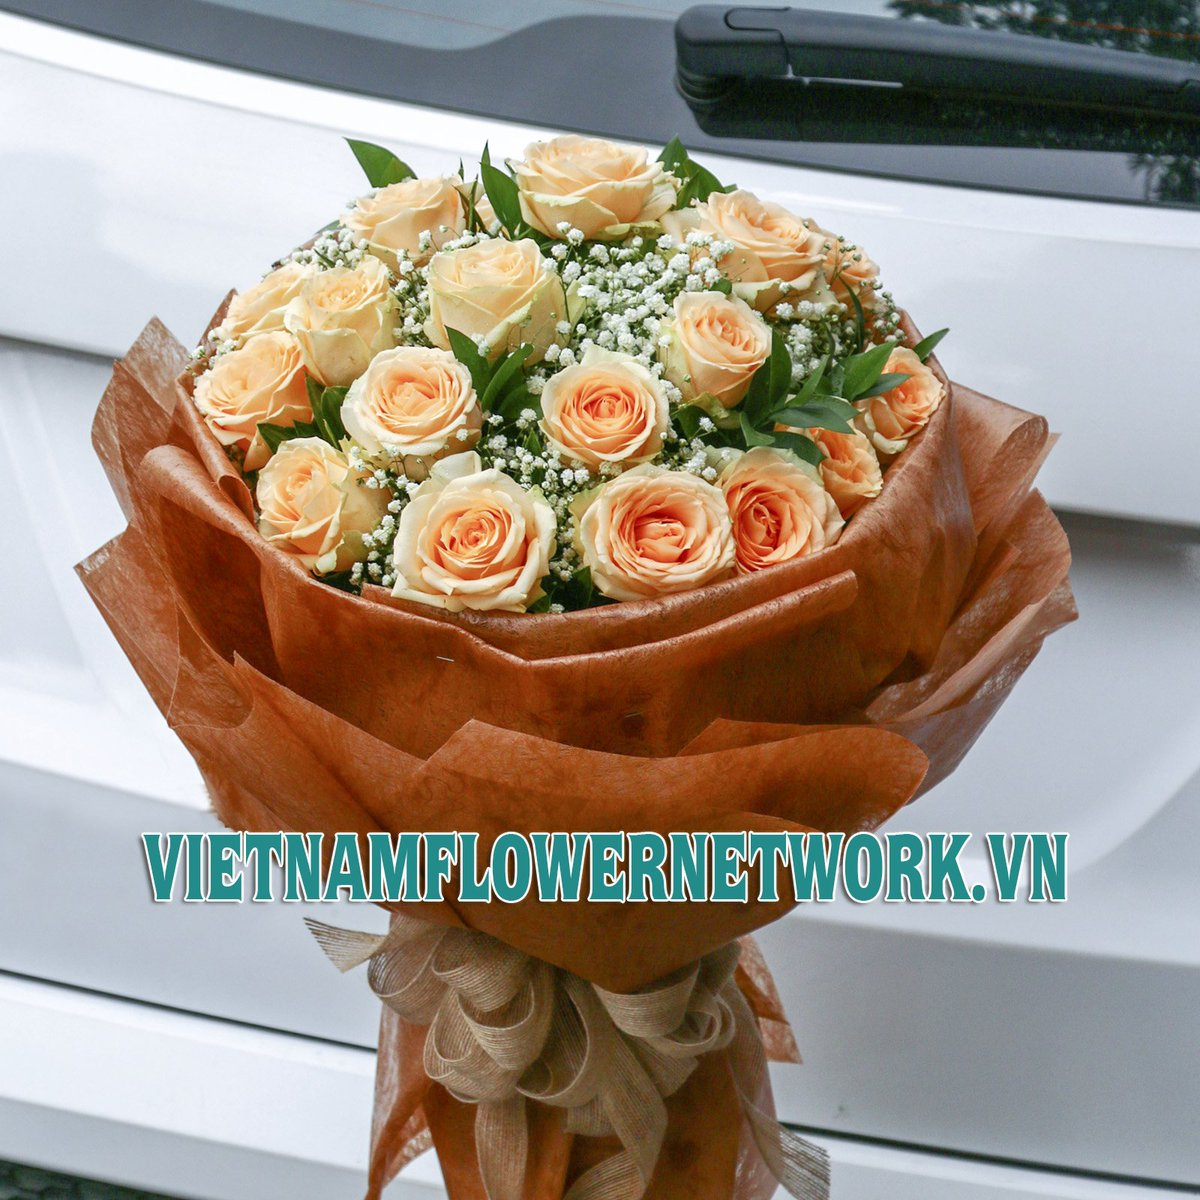 Yellow cream roses bouquet free delivery in Vietnam  Vietnam Flower Network 📲 +84973535559( call/ mess) 📩 sales@vietnamflowernetwork.vn 💐  #vietnamflowernetwork #vietnamflowers #flowerstovietnam #flowers #florist #vietnam #yellowcreamroses #bouquet